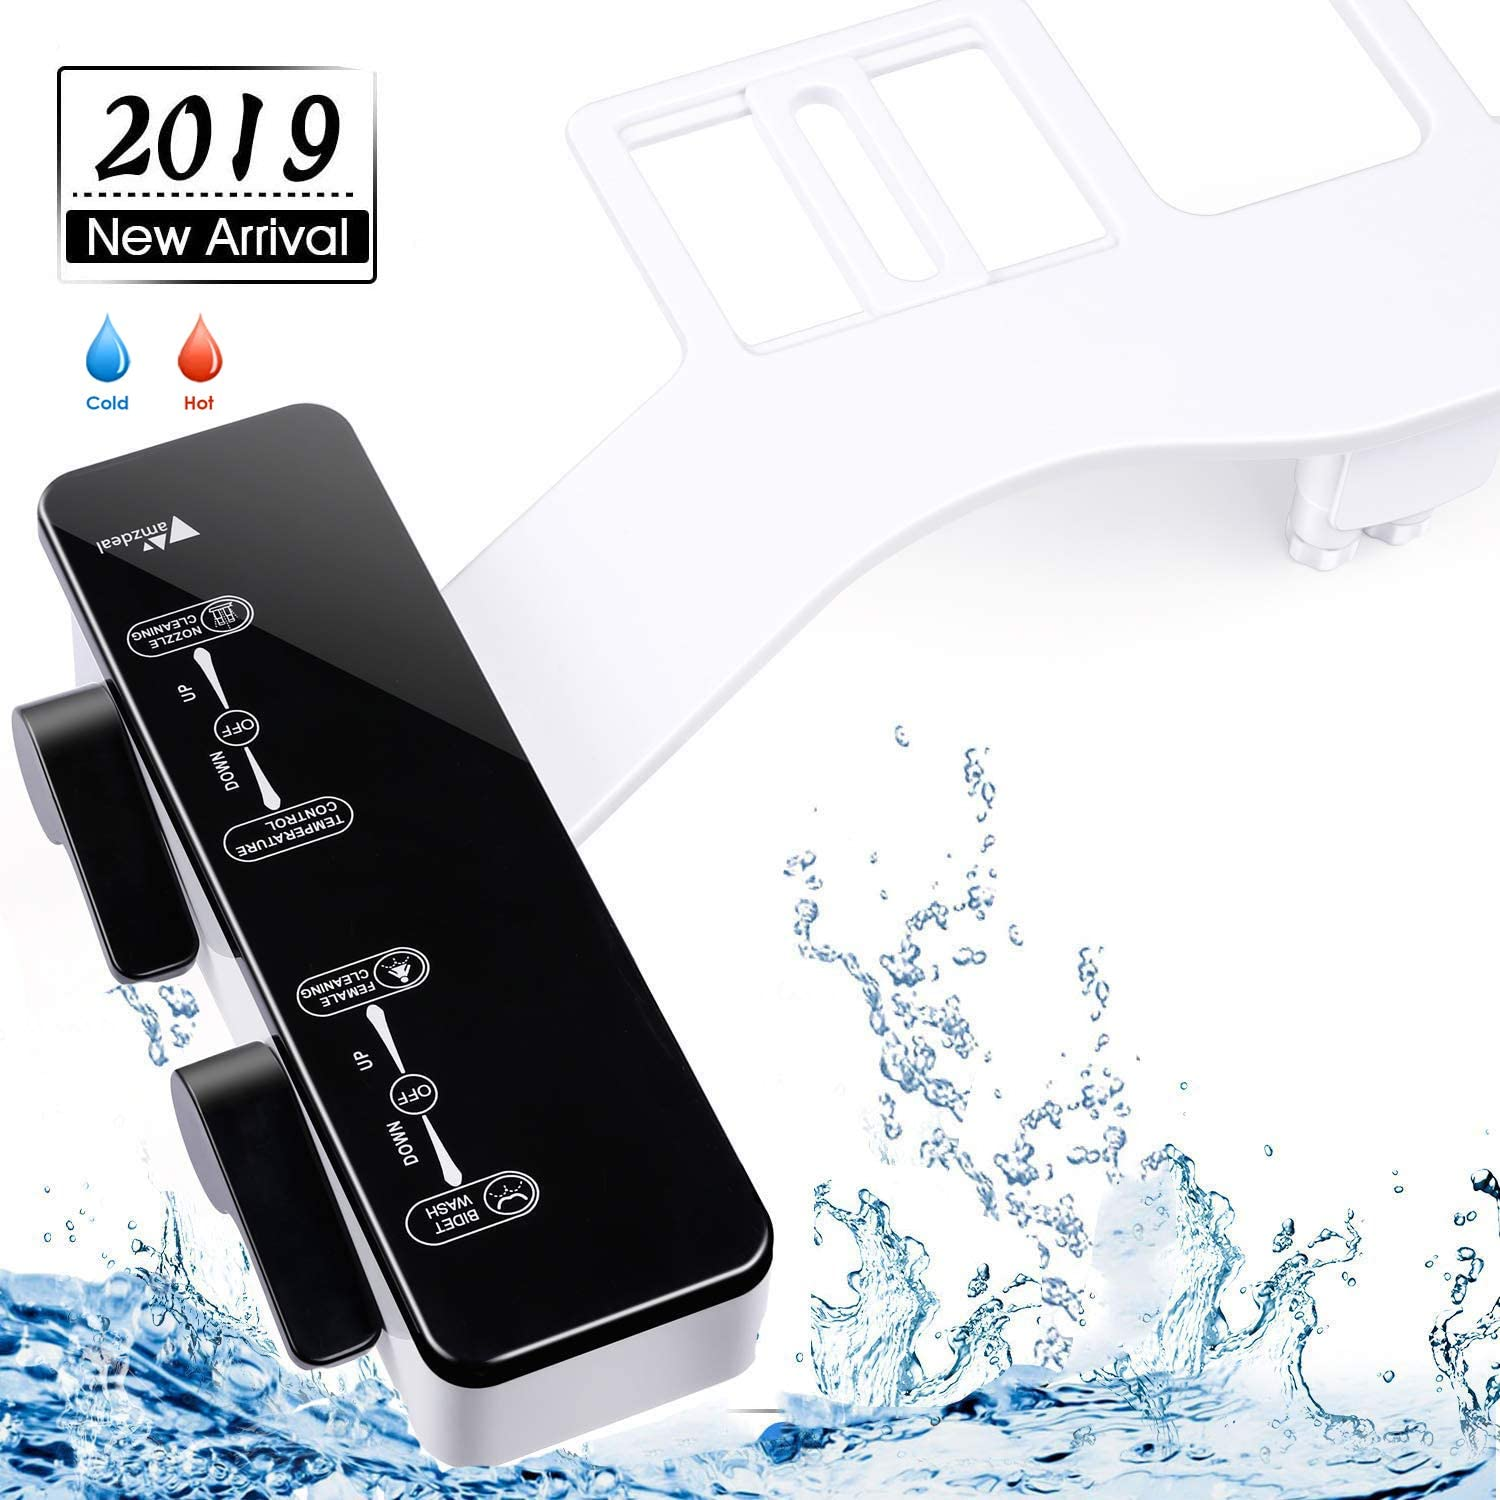 amzdeal Bidet, Hot and Cold Water Bidet Attachment with Dual Self-Cleaning Nozzle(Frontal & Rear/Feminine Wash), Fresh Water Spray Bidet for Toilet, Ultra Thin, Non-Electric, Water Pressure Control